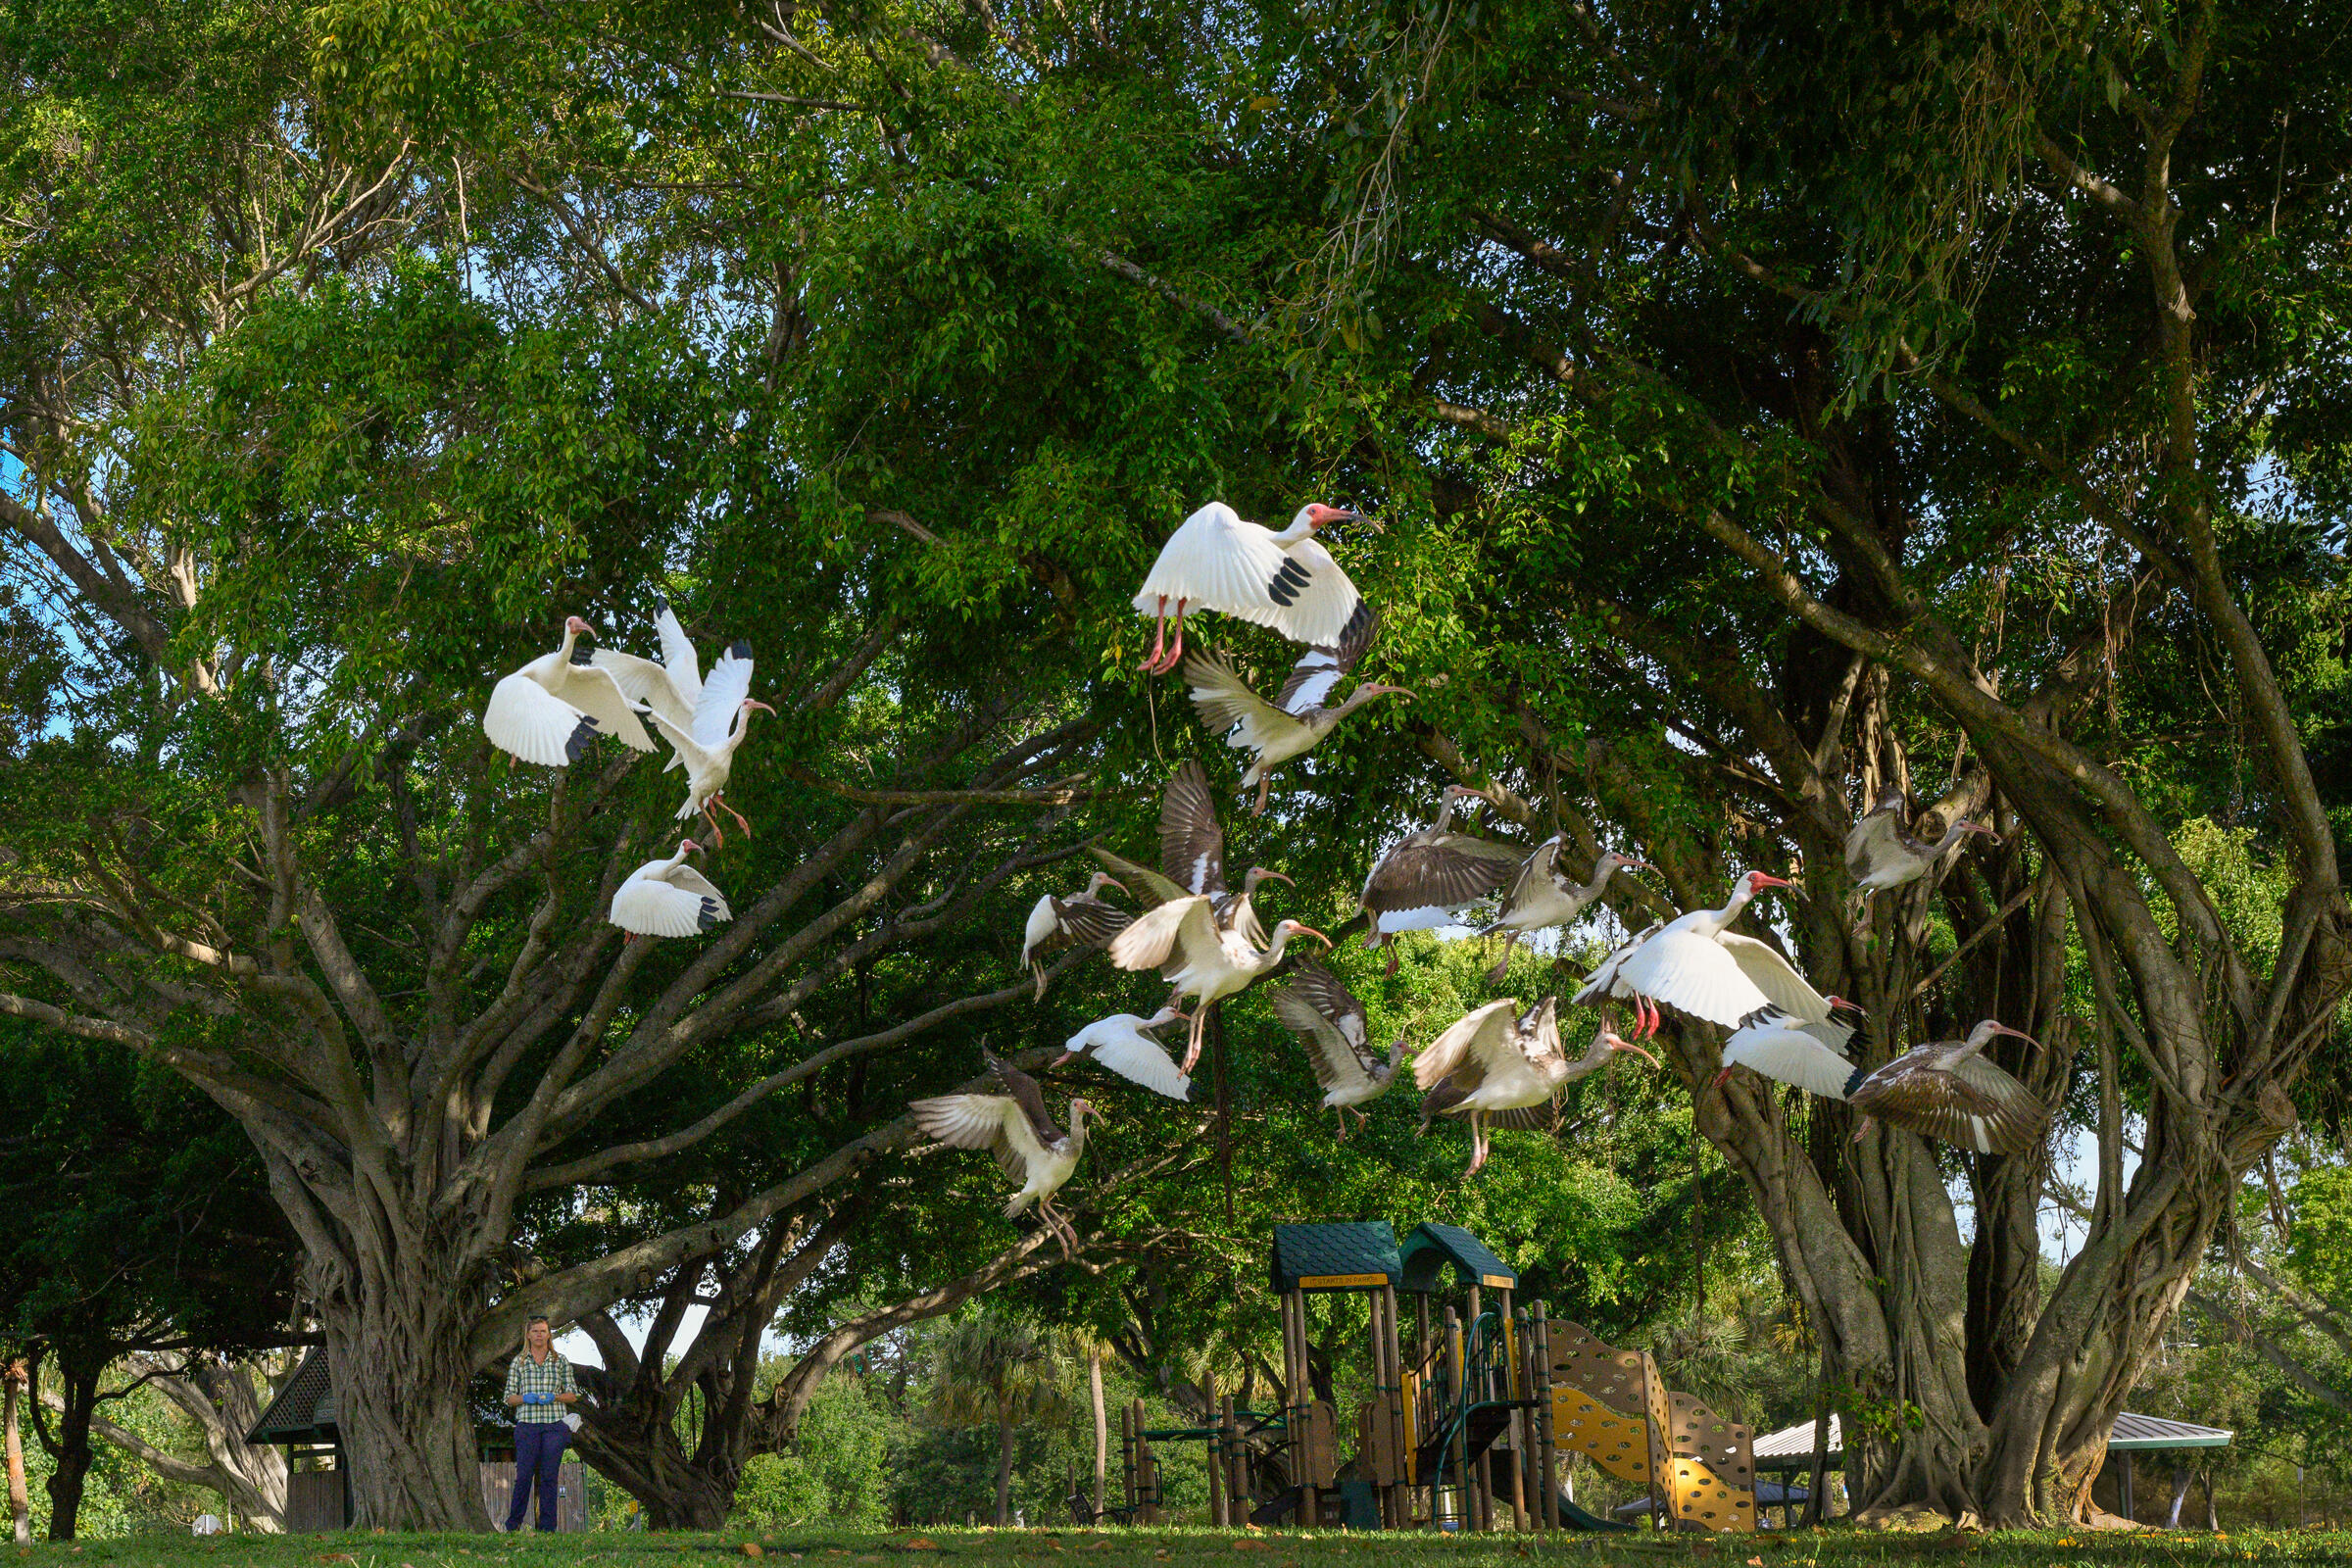 About a dozen White Ibis are in mid-flight in the air, with wings flapping, as a scientist in the background looks on. Behind them is a kids' playground and green trees.